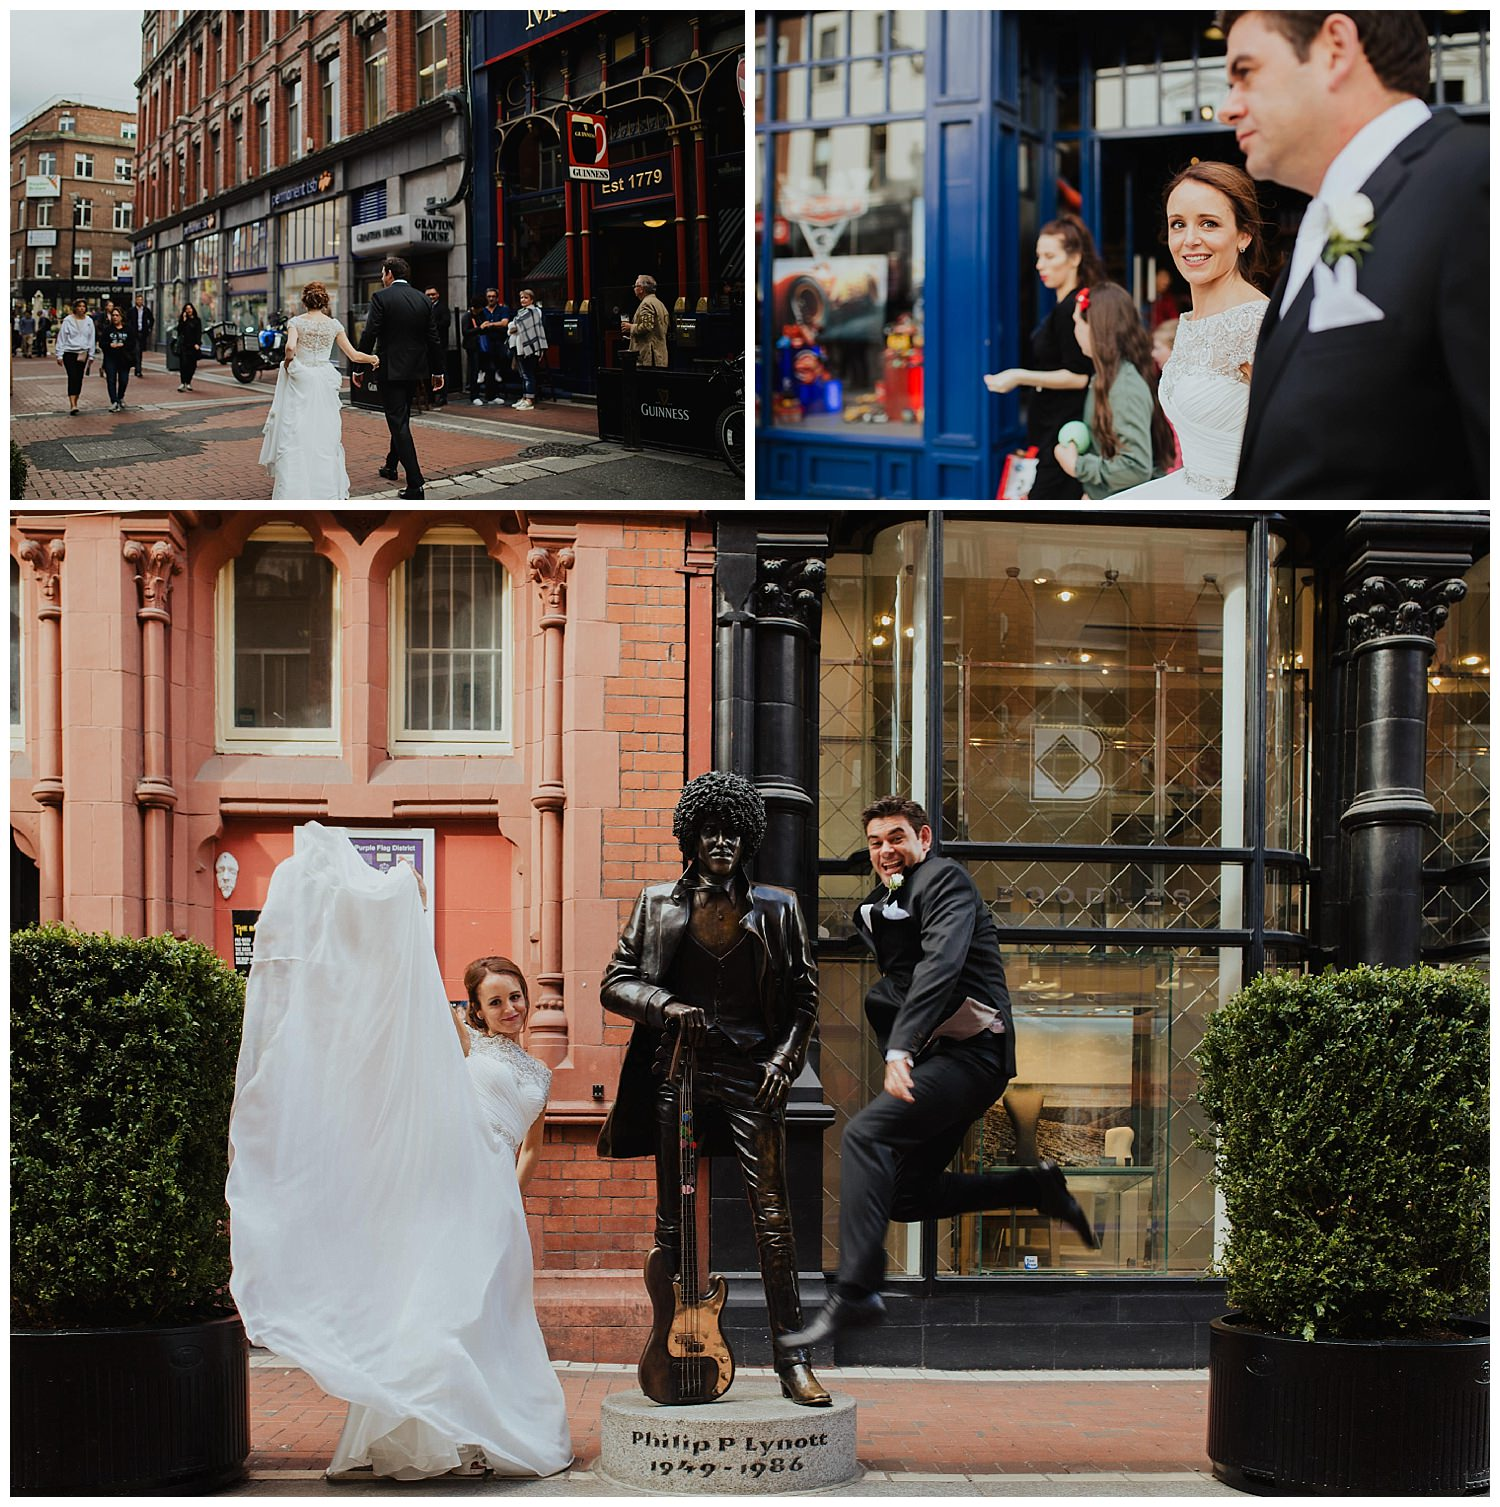 g+j_westbury_documentary_dublin_city_wedding_photographer43.jpg